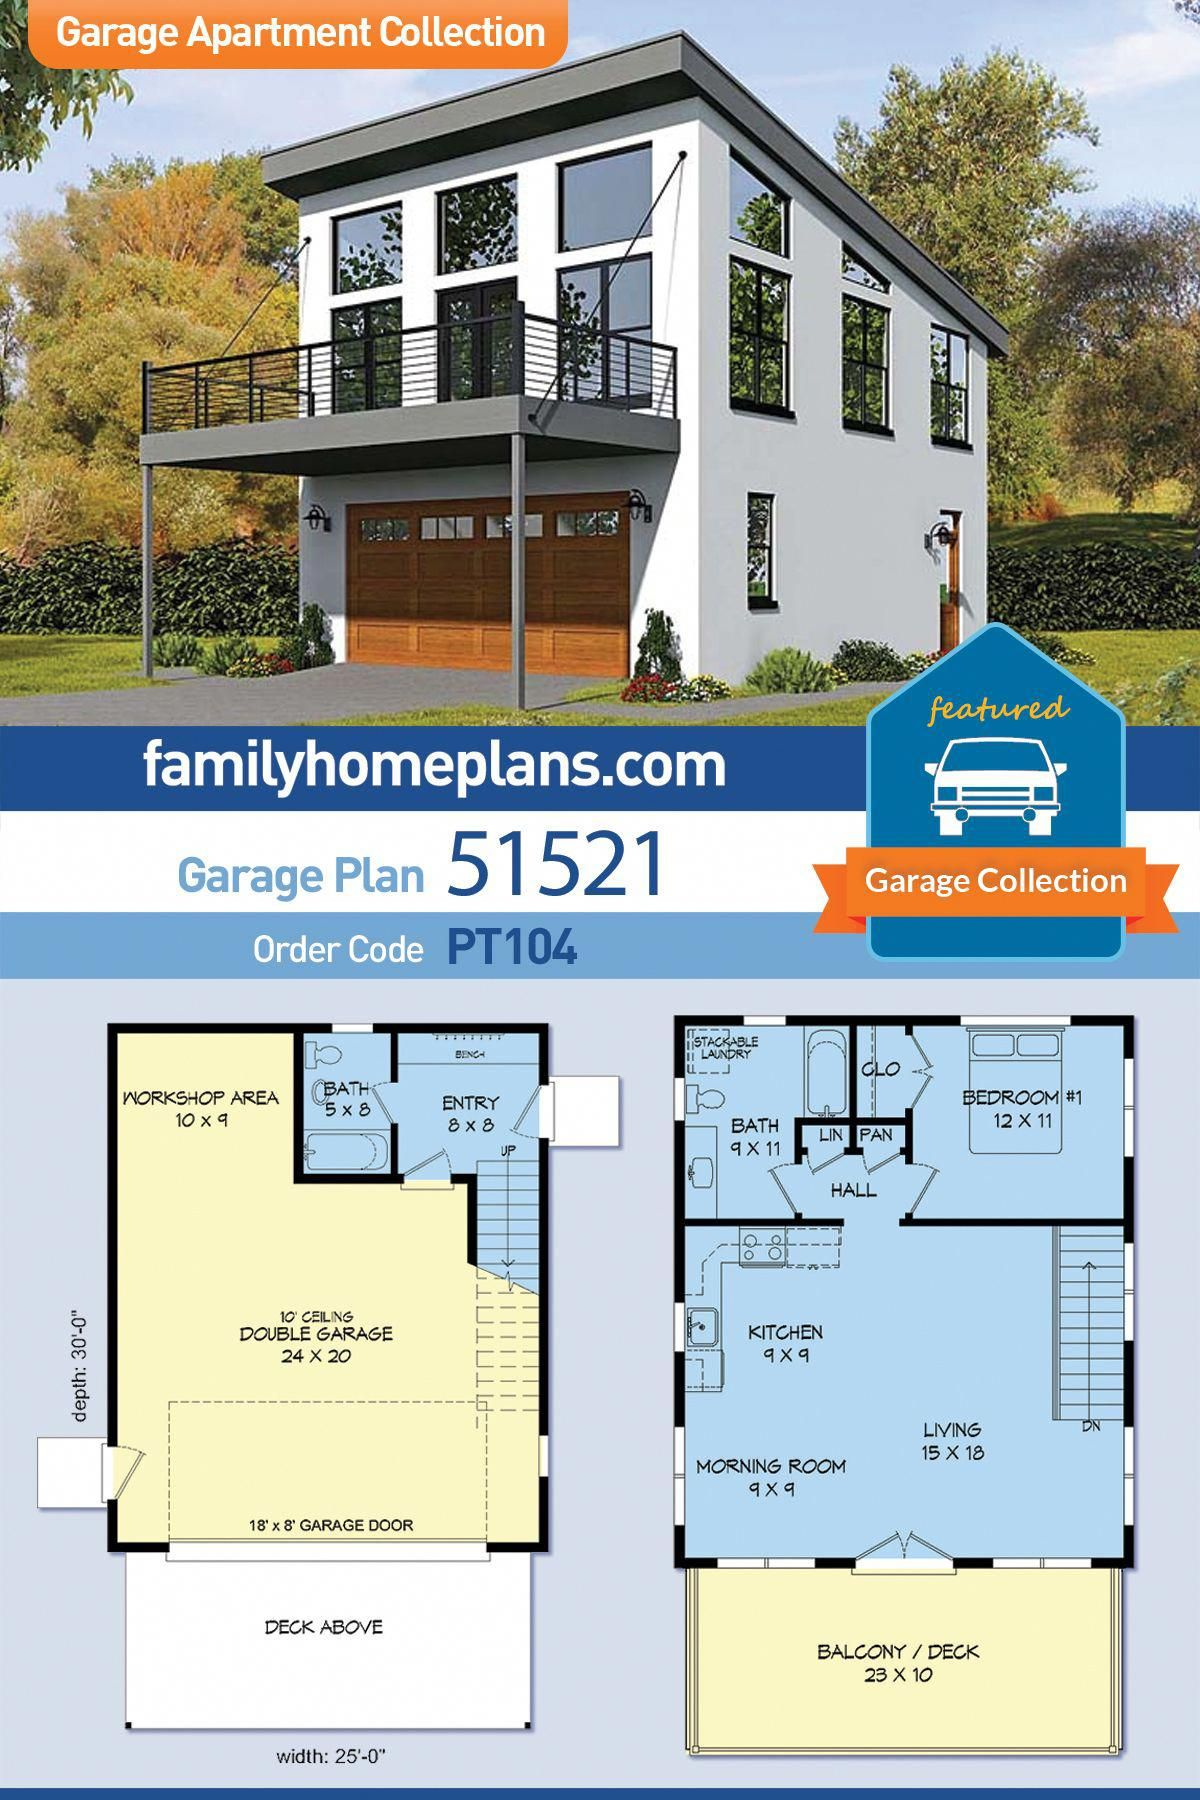 Modern Or Contemporary Style Of Design In This Two Car Garage With 750 Square Feet Of Living Carriage House Plans Garage Plans With Loft Garage Apartment Plan